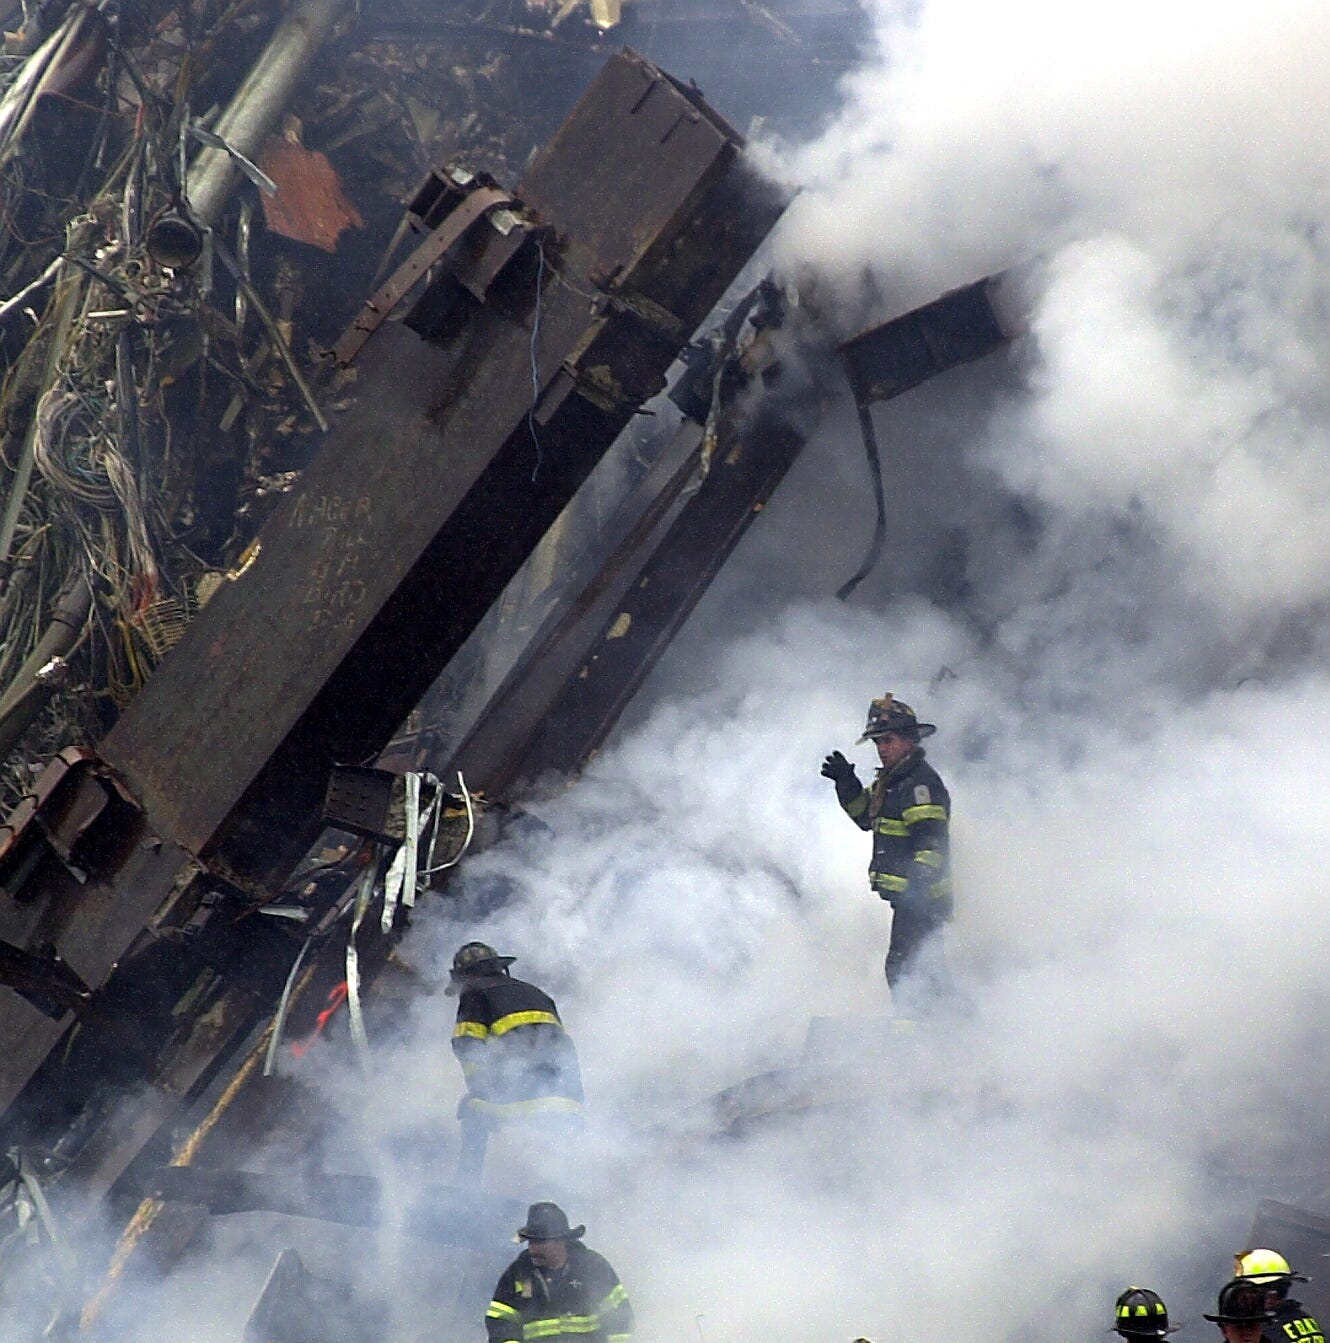 9/11 responders came from all over to help, so all in Congress must back renewed aid